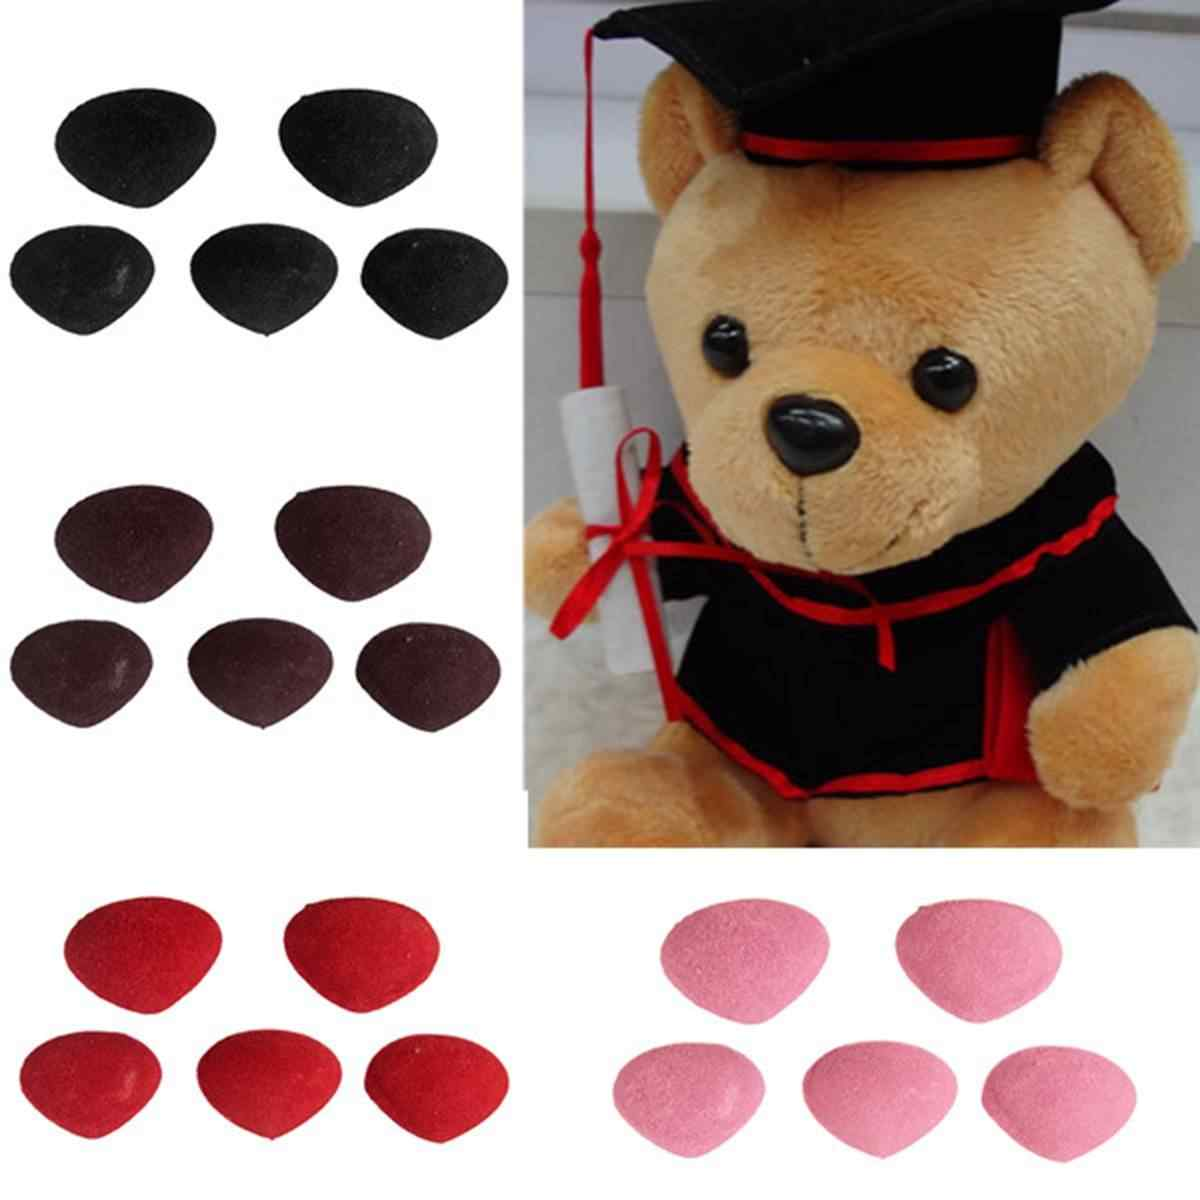 5Pcs Plastic Triangle Velvets Noses Buttons Eyes DIY For Bear Toy Doll Accessories Toys